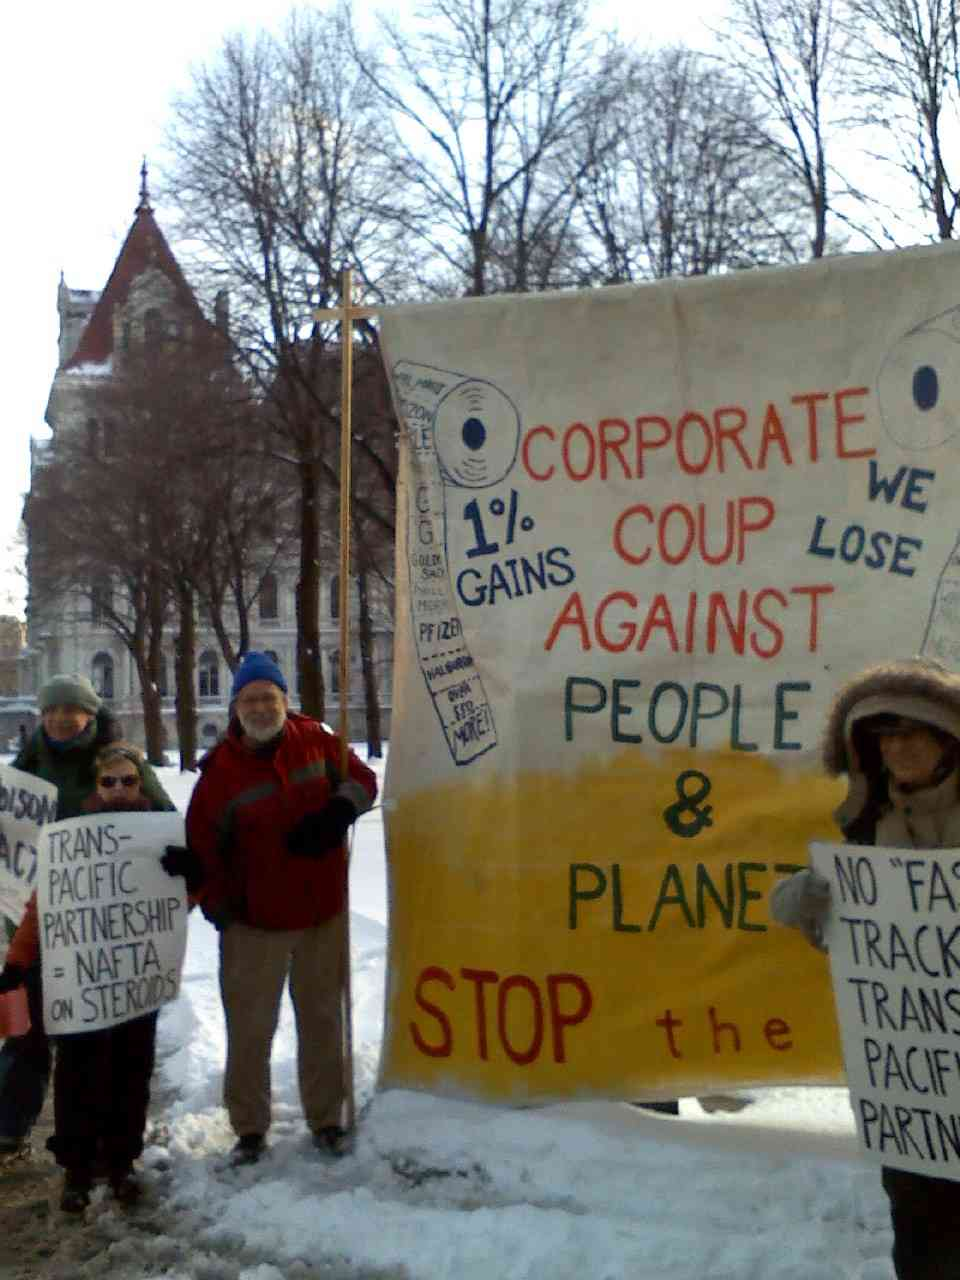 Albany Exposes the Secret Trans-Pacific Partnership, You can too!